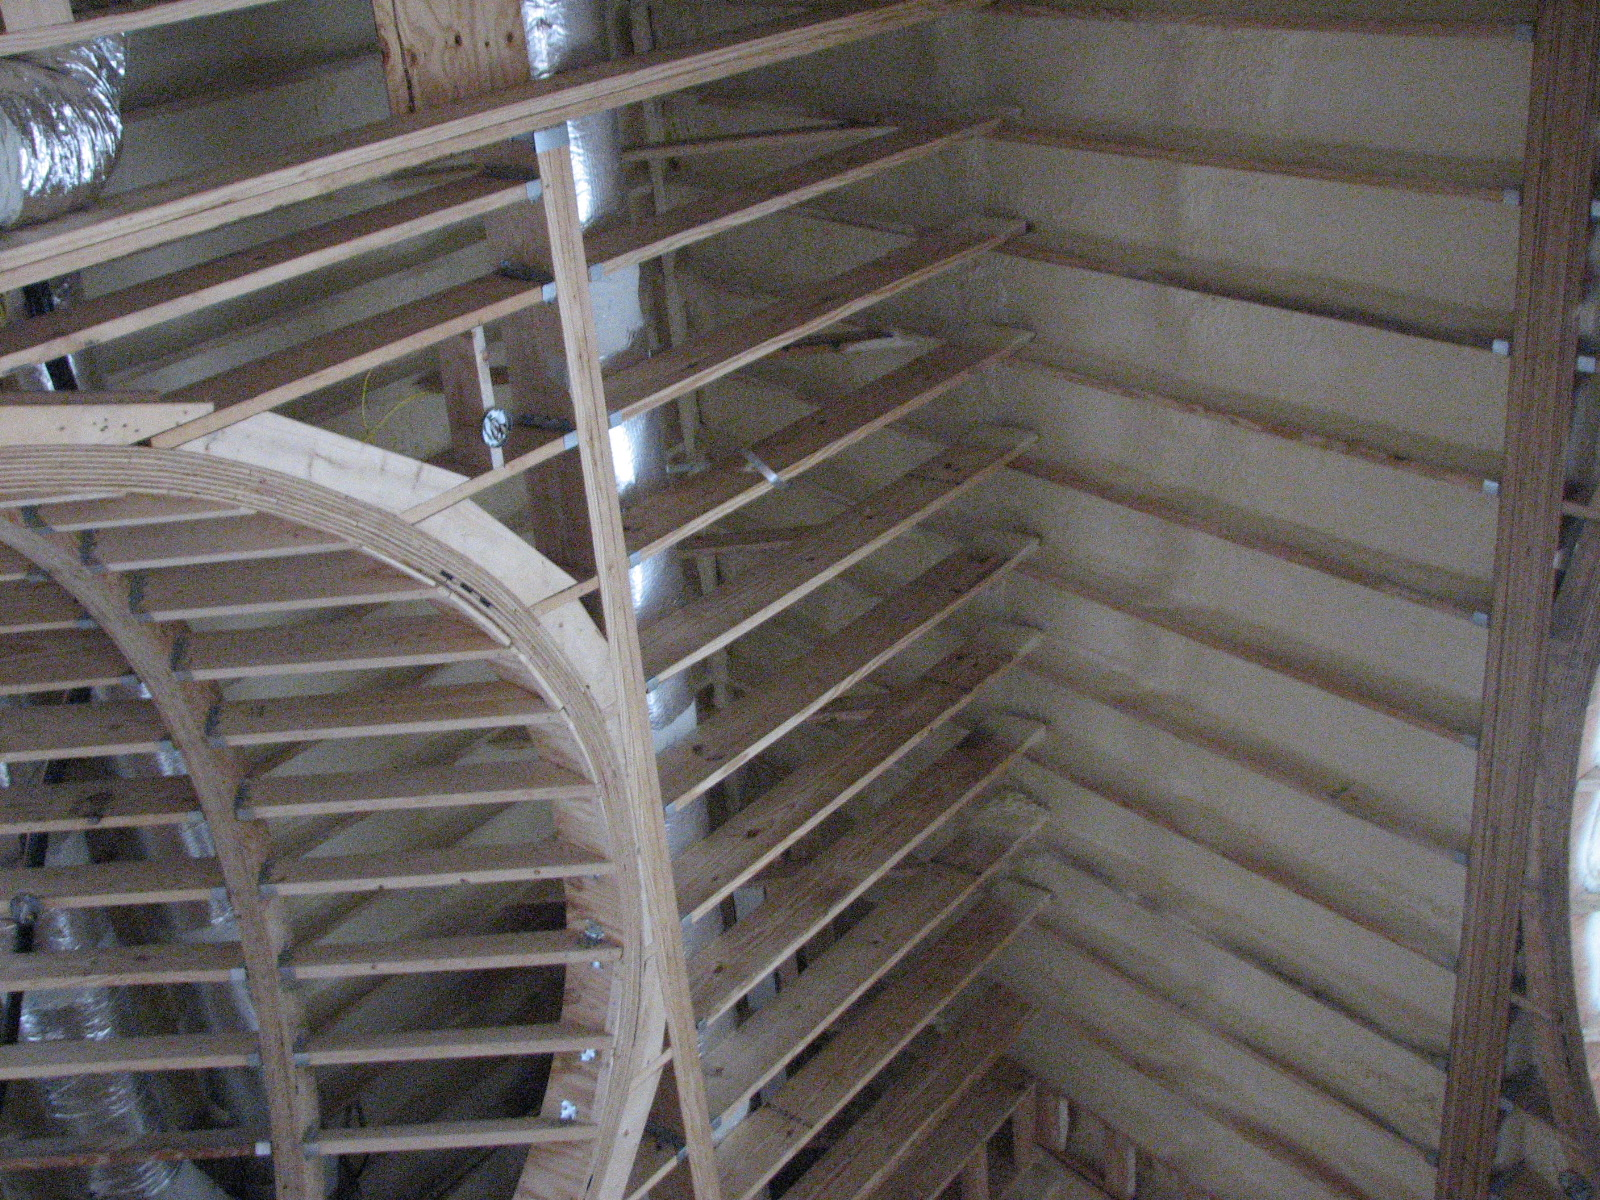 To Vent or Not to Vent: Deciding what is best for attic